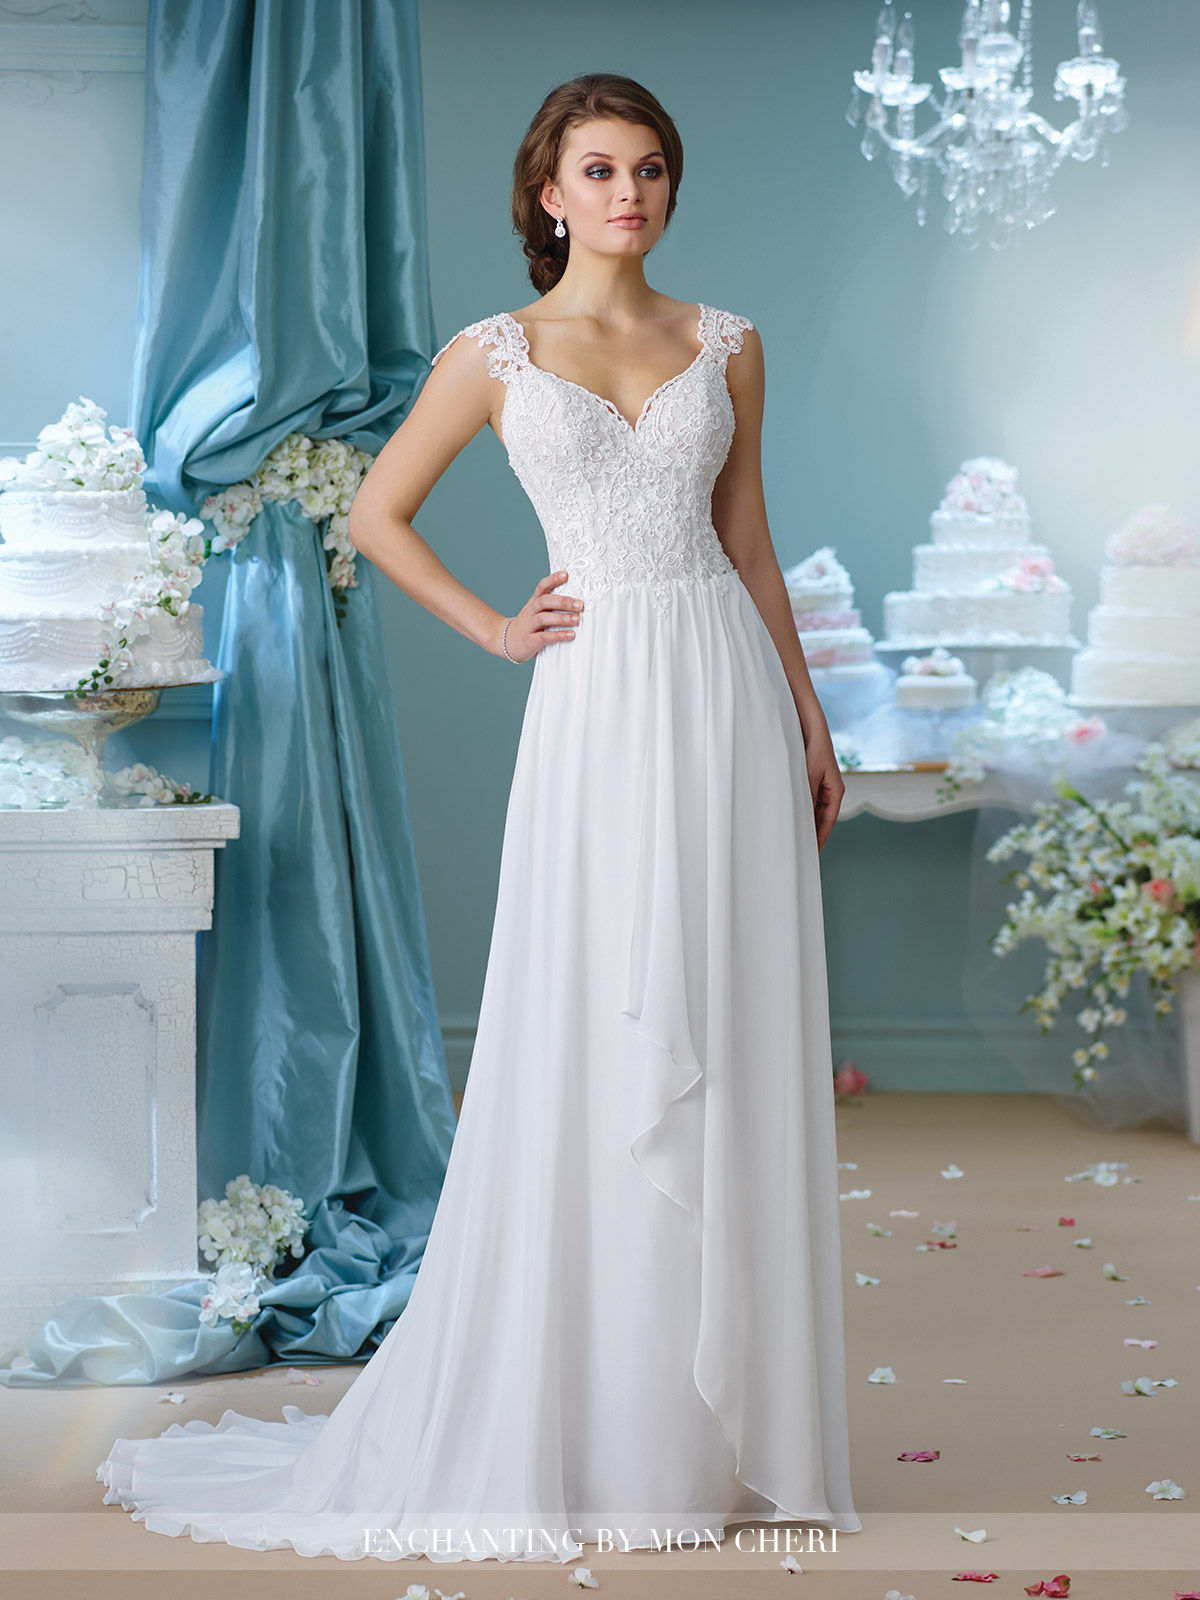 Amazing Au Bridal Gowns Ensign - All Wedding Dresses ...